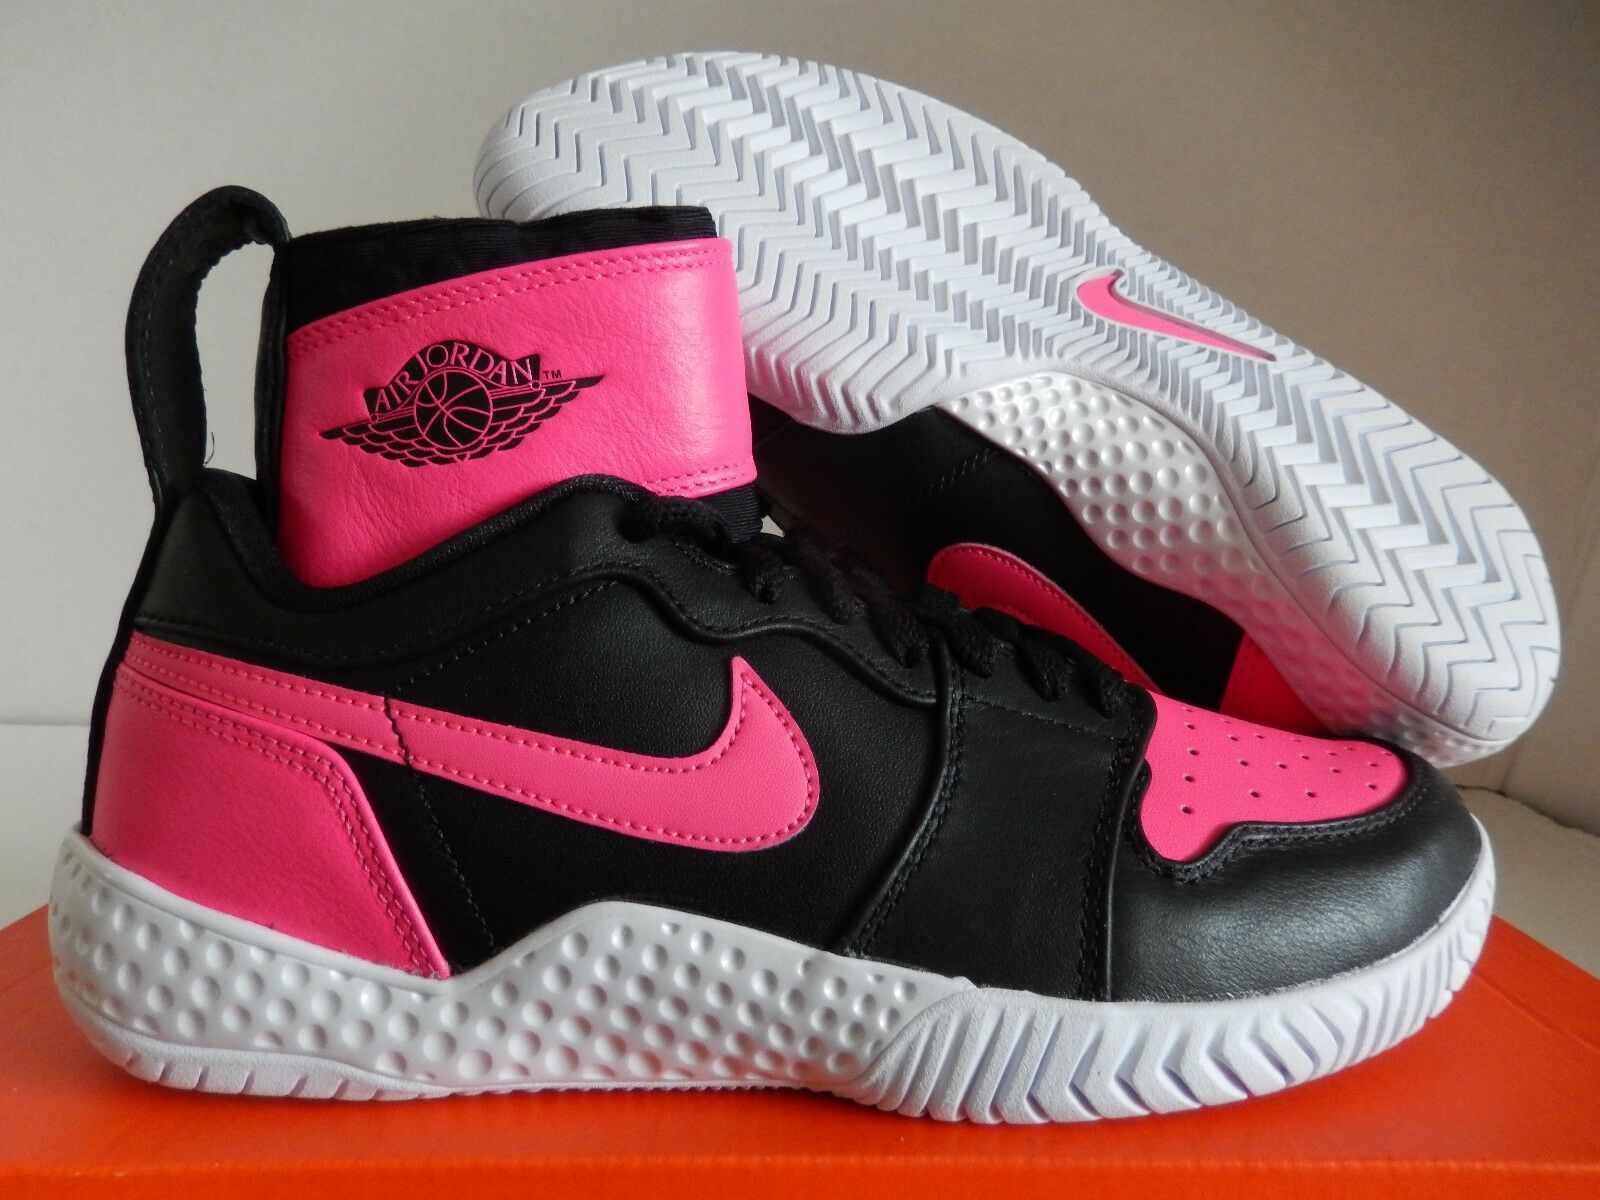 NIKE FLARE LG QS AJ1 JORDAN SERENA WILLIAMS BLACK-HYPER PINK Price reduction Special limited time